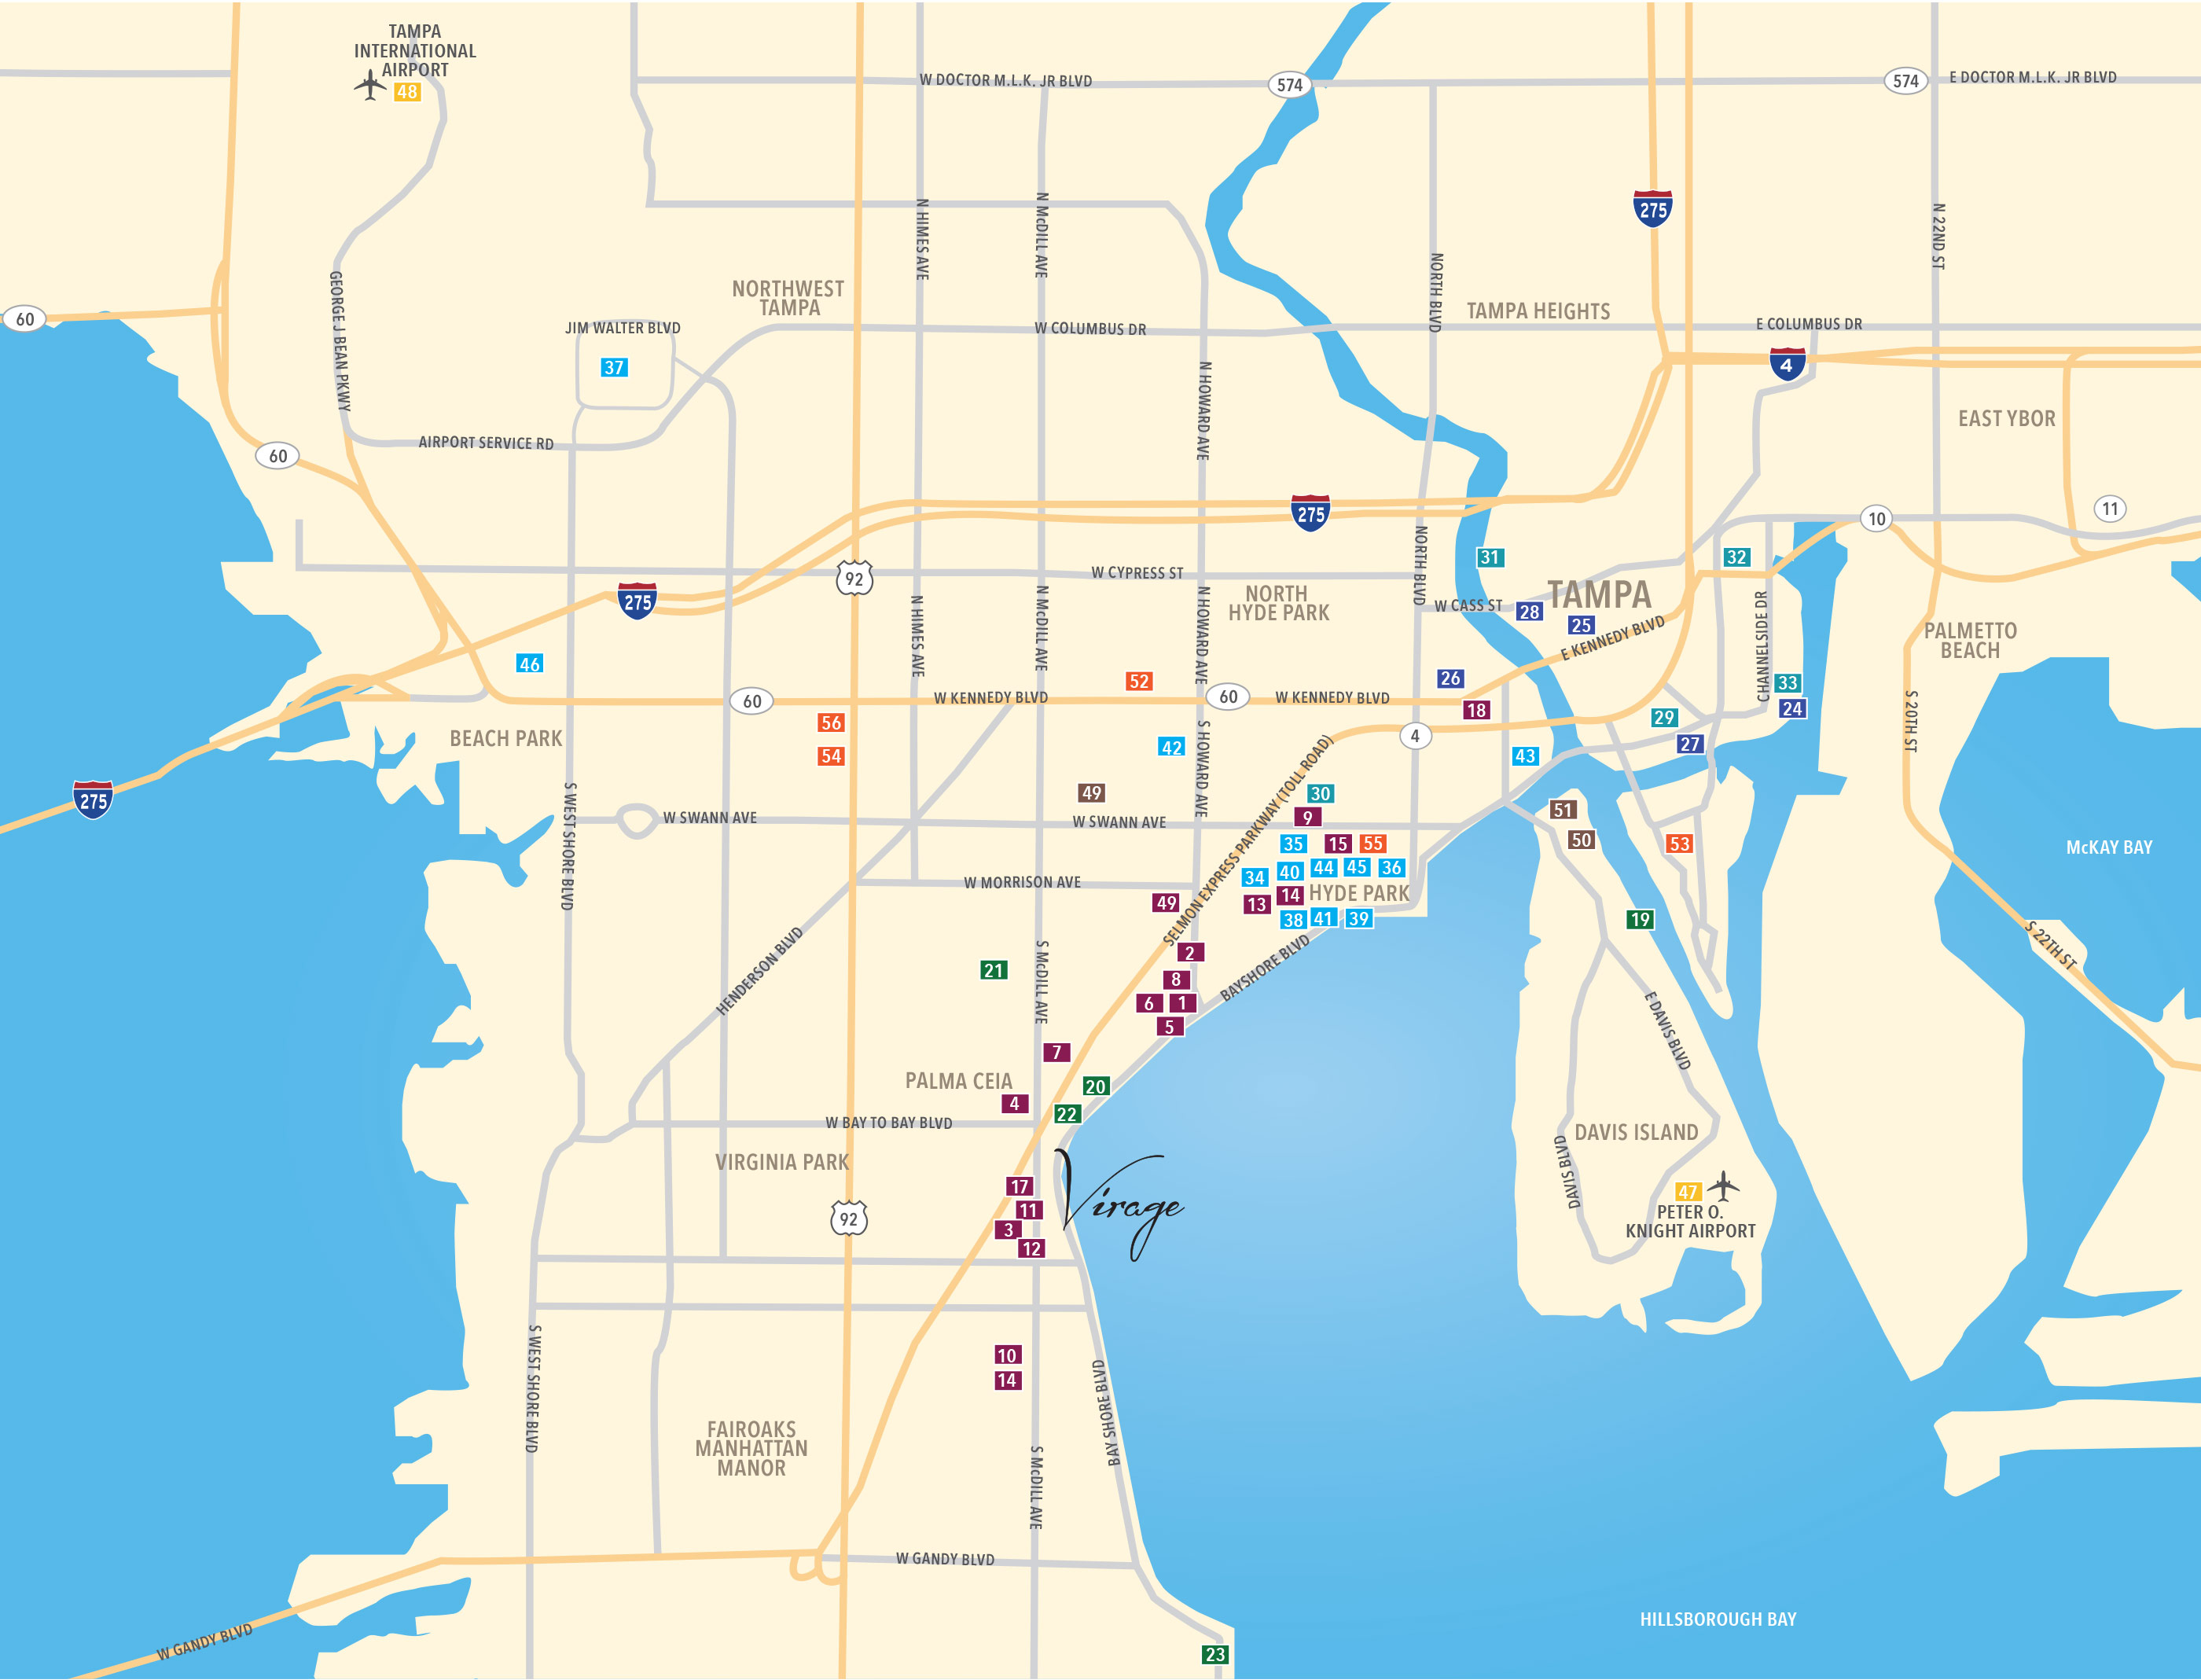 map of South Tampa near Bayshore Blvd